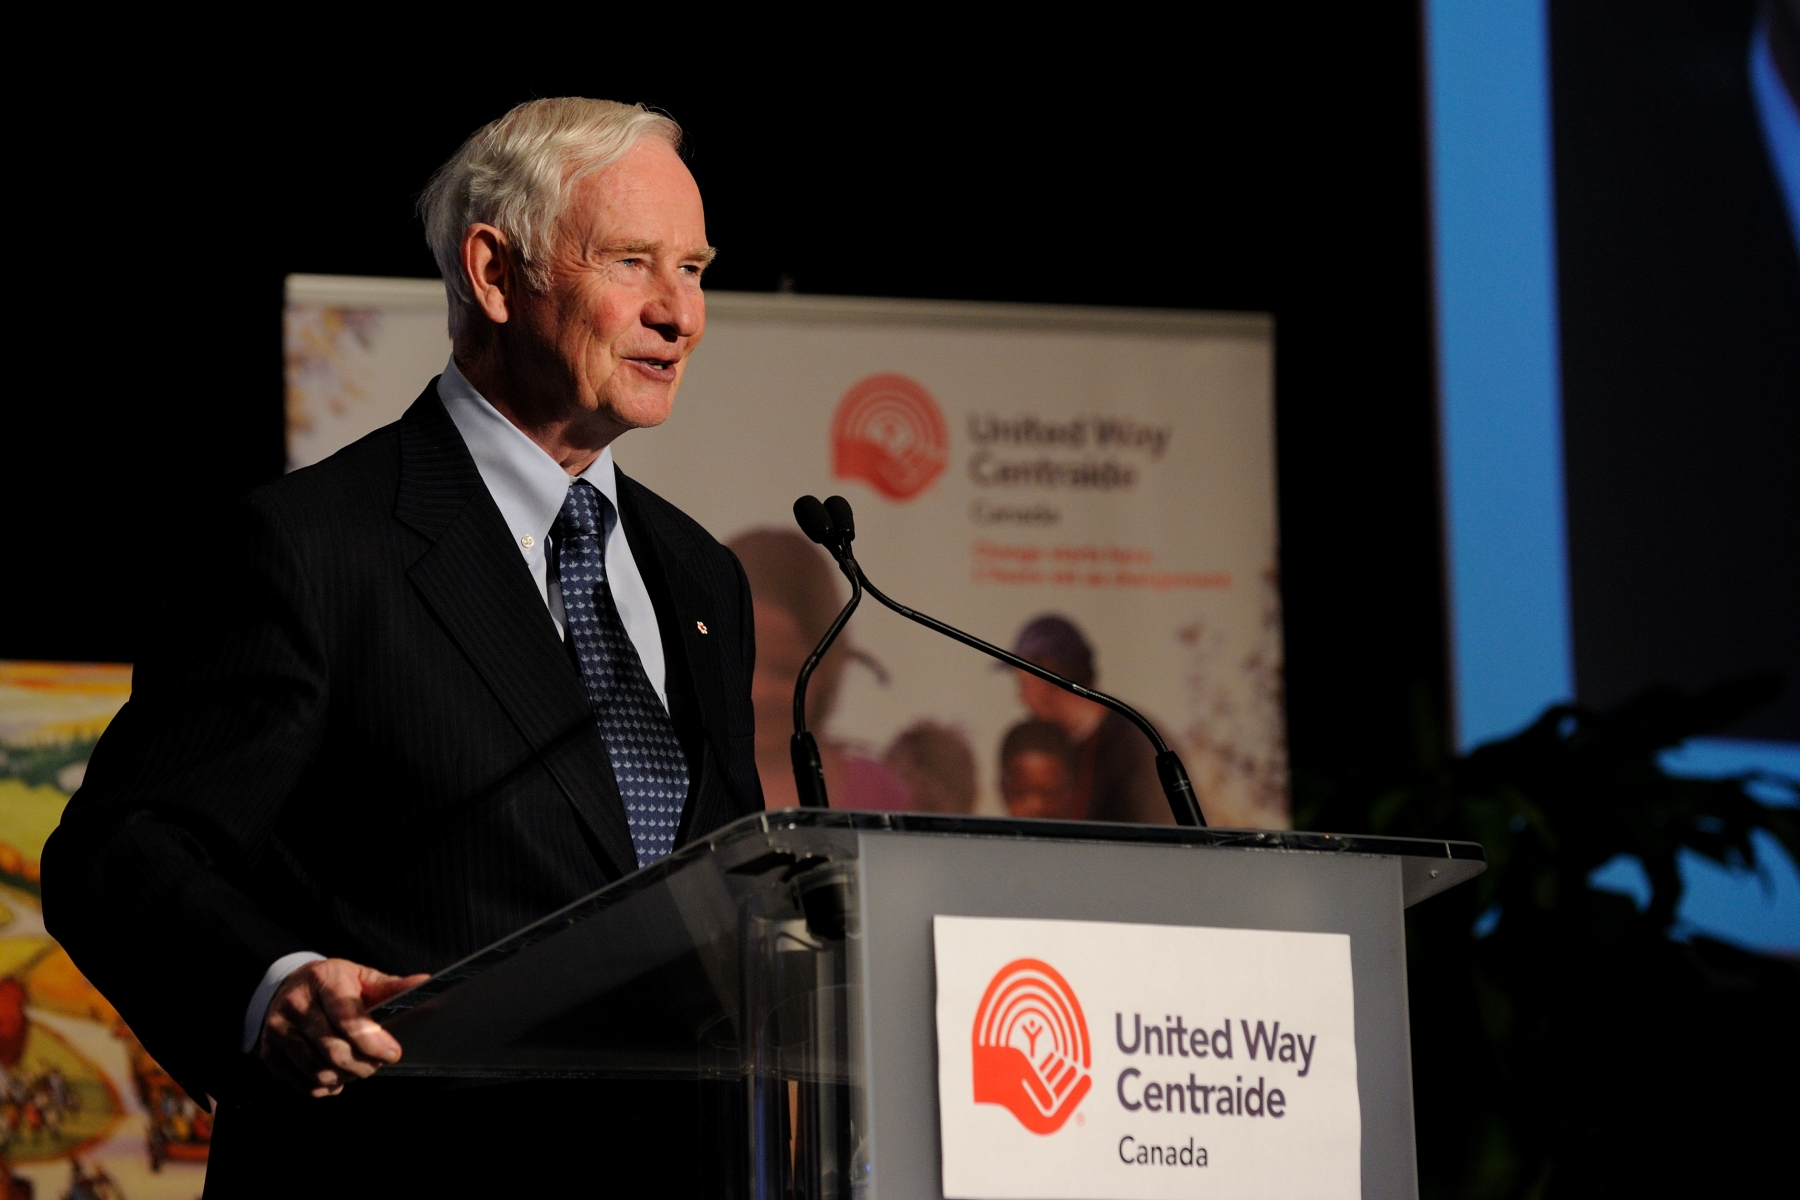 The Governor General, patron of United Way of Canada, delivered a keynote speech at the organization's 2011 national conference.